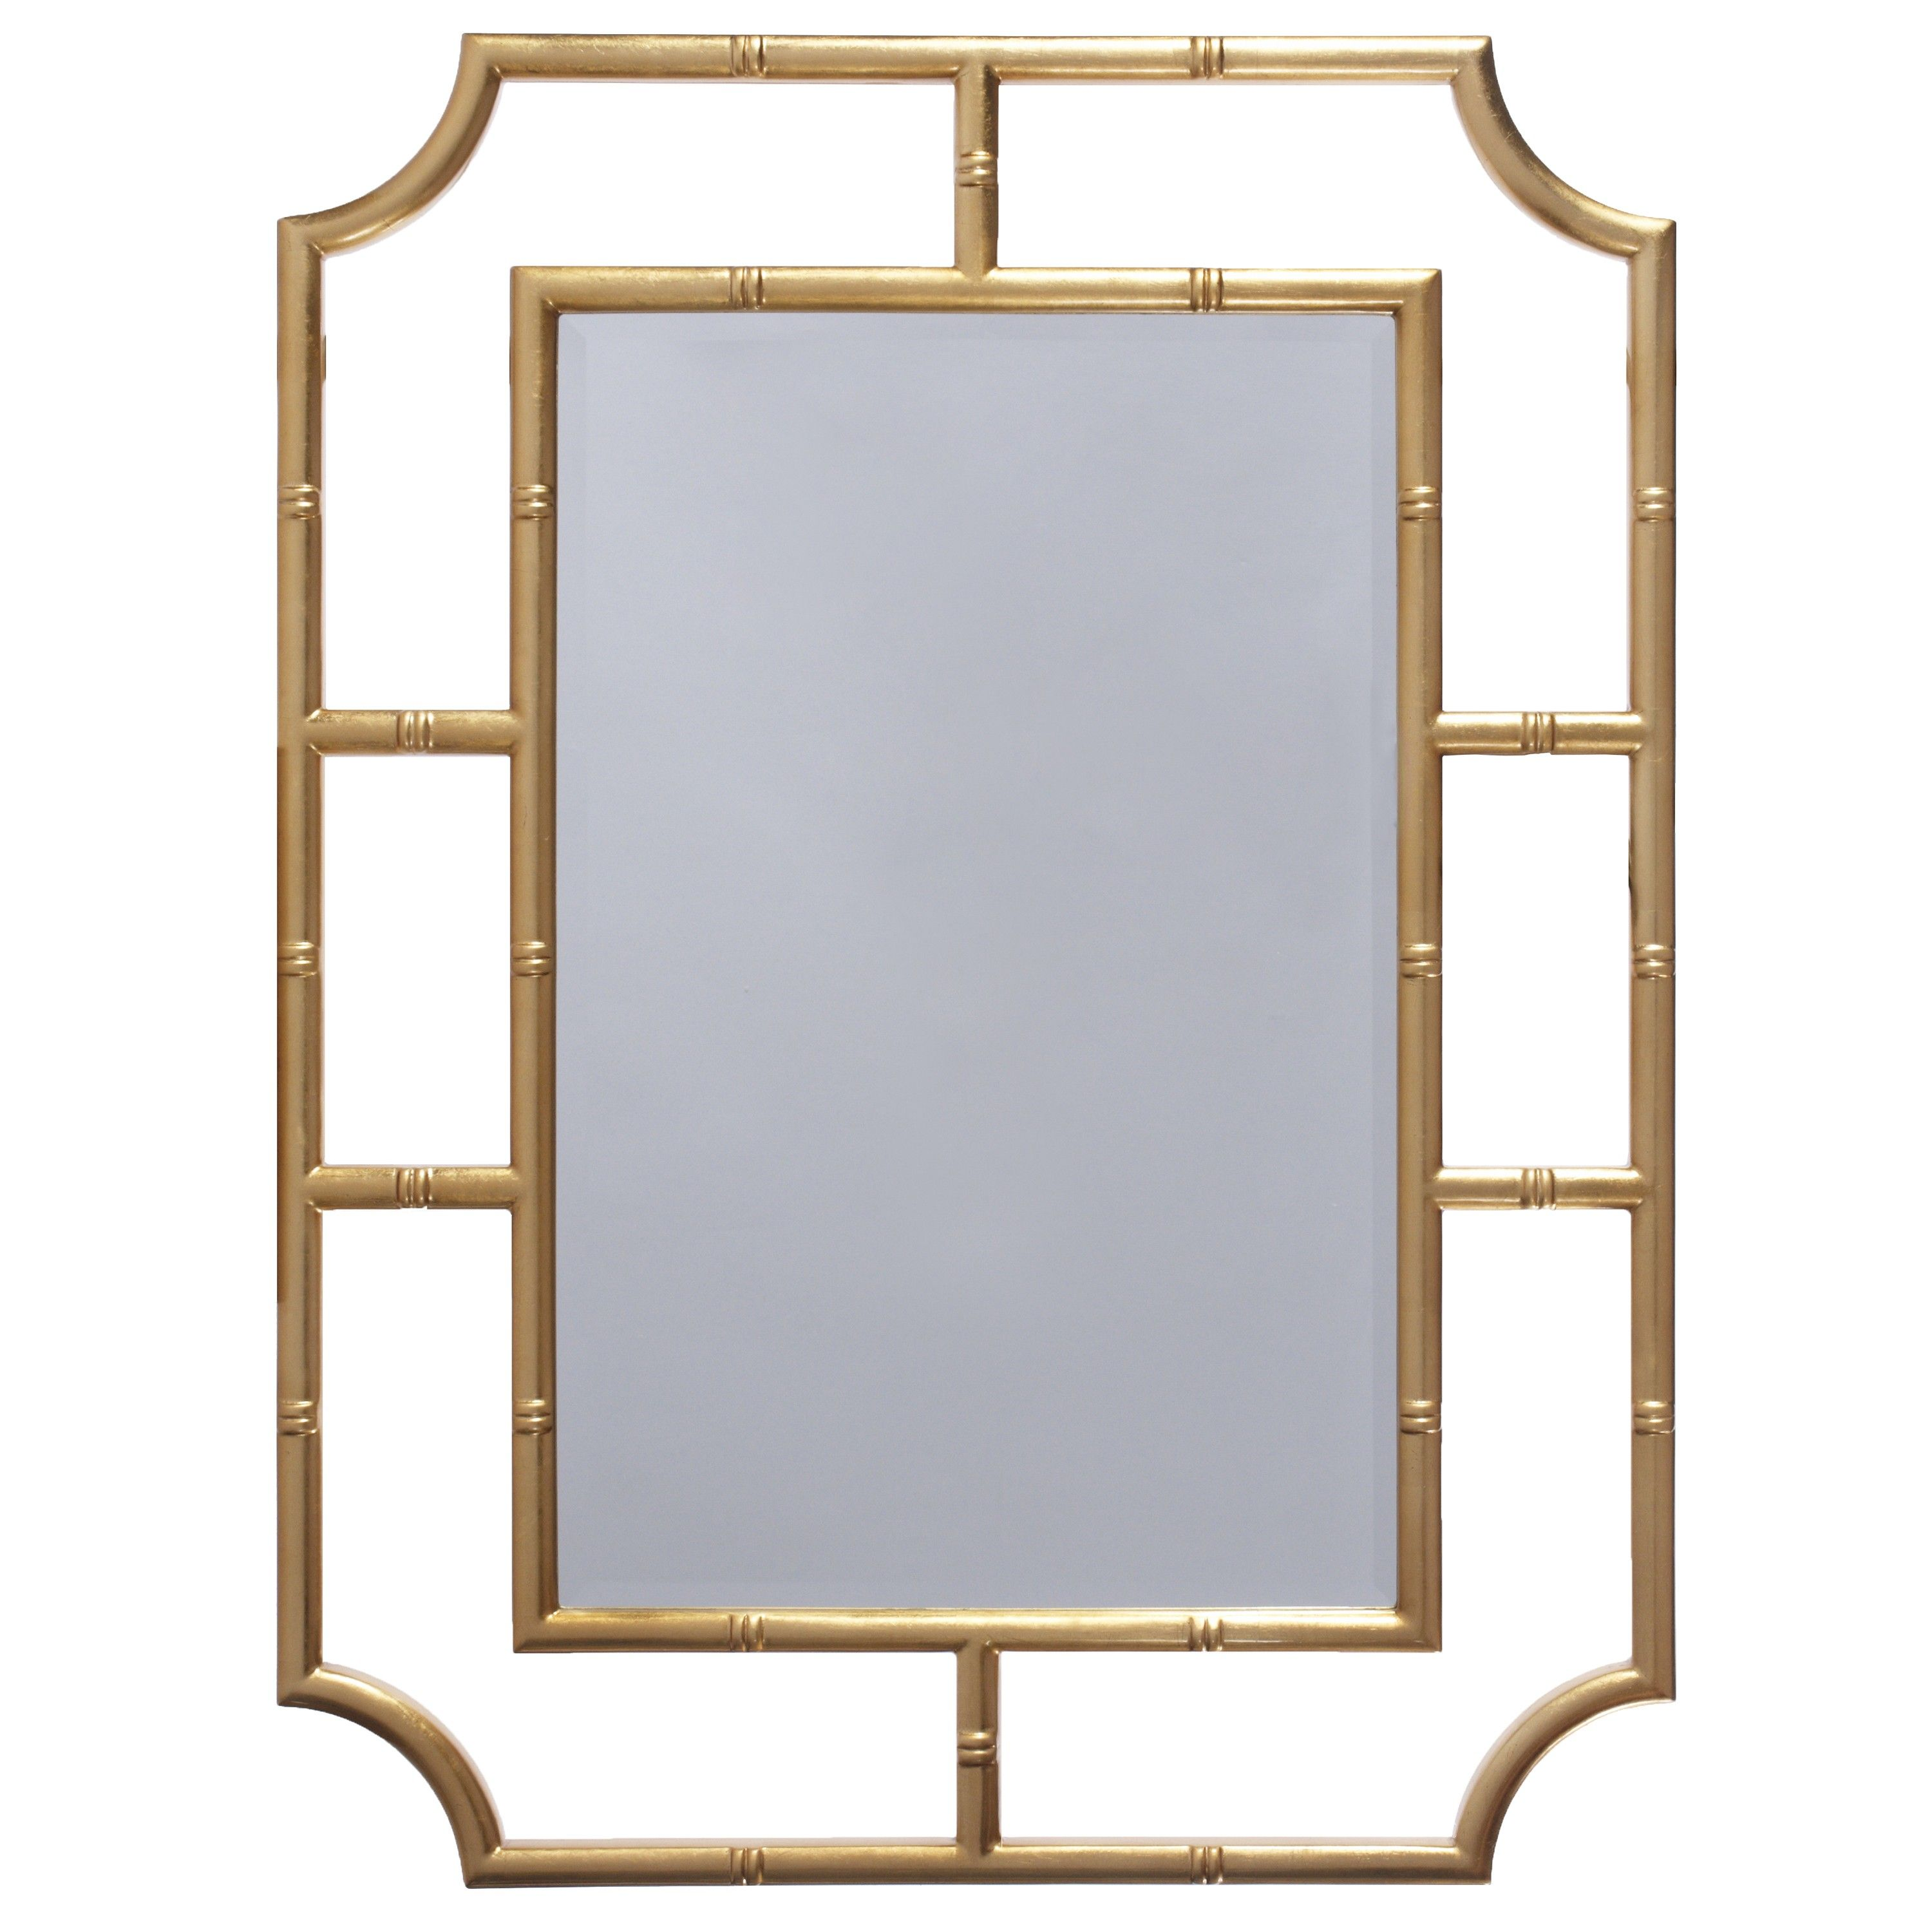 Marian gold leaf bamboo detail mirror | Pinterest